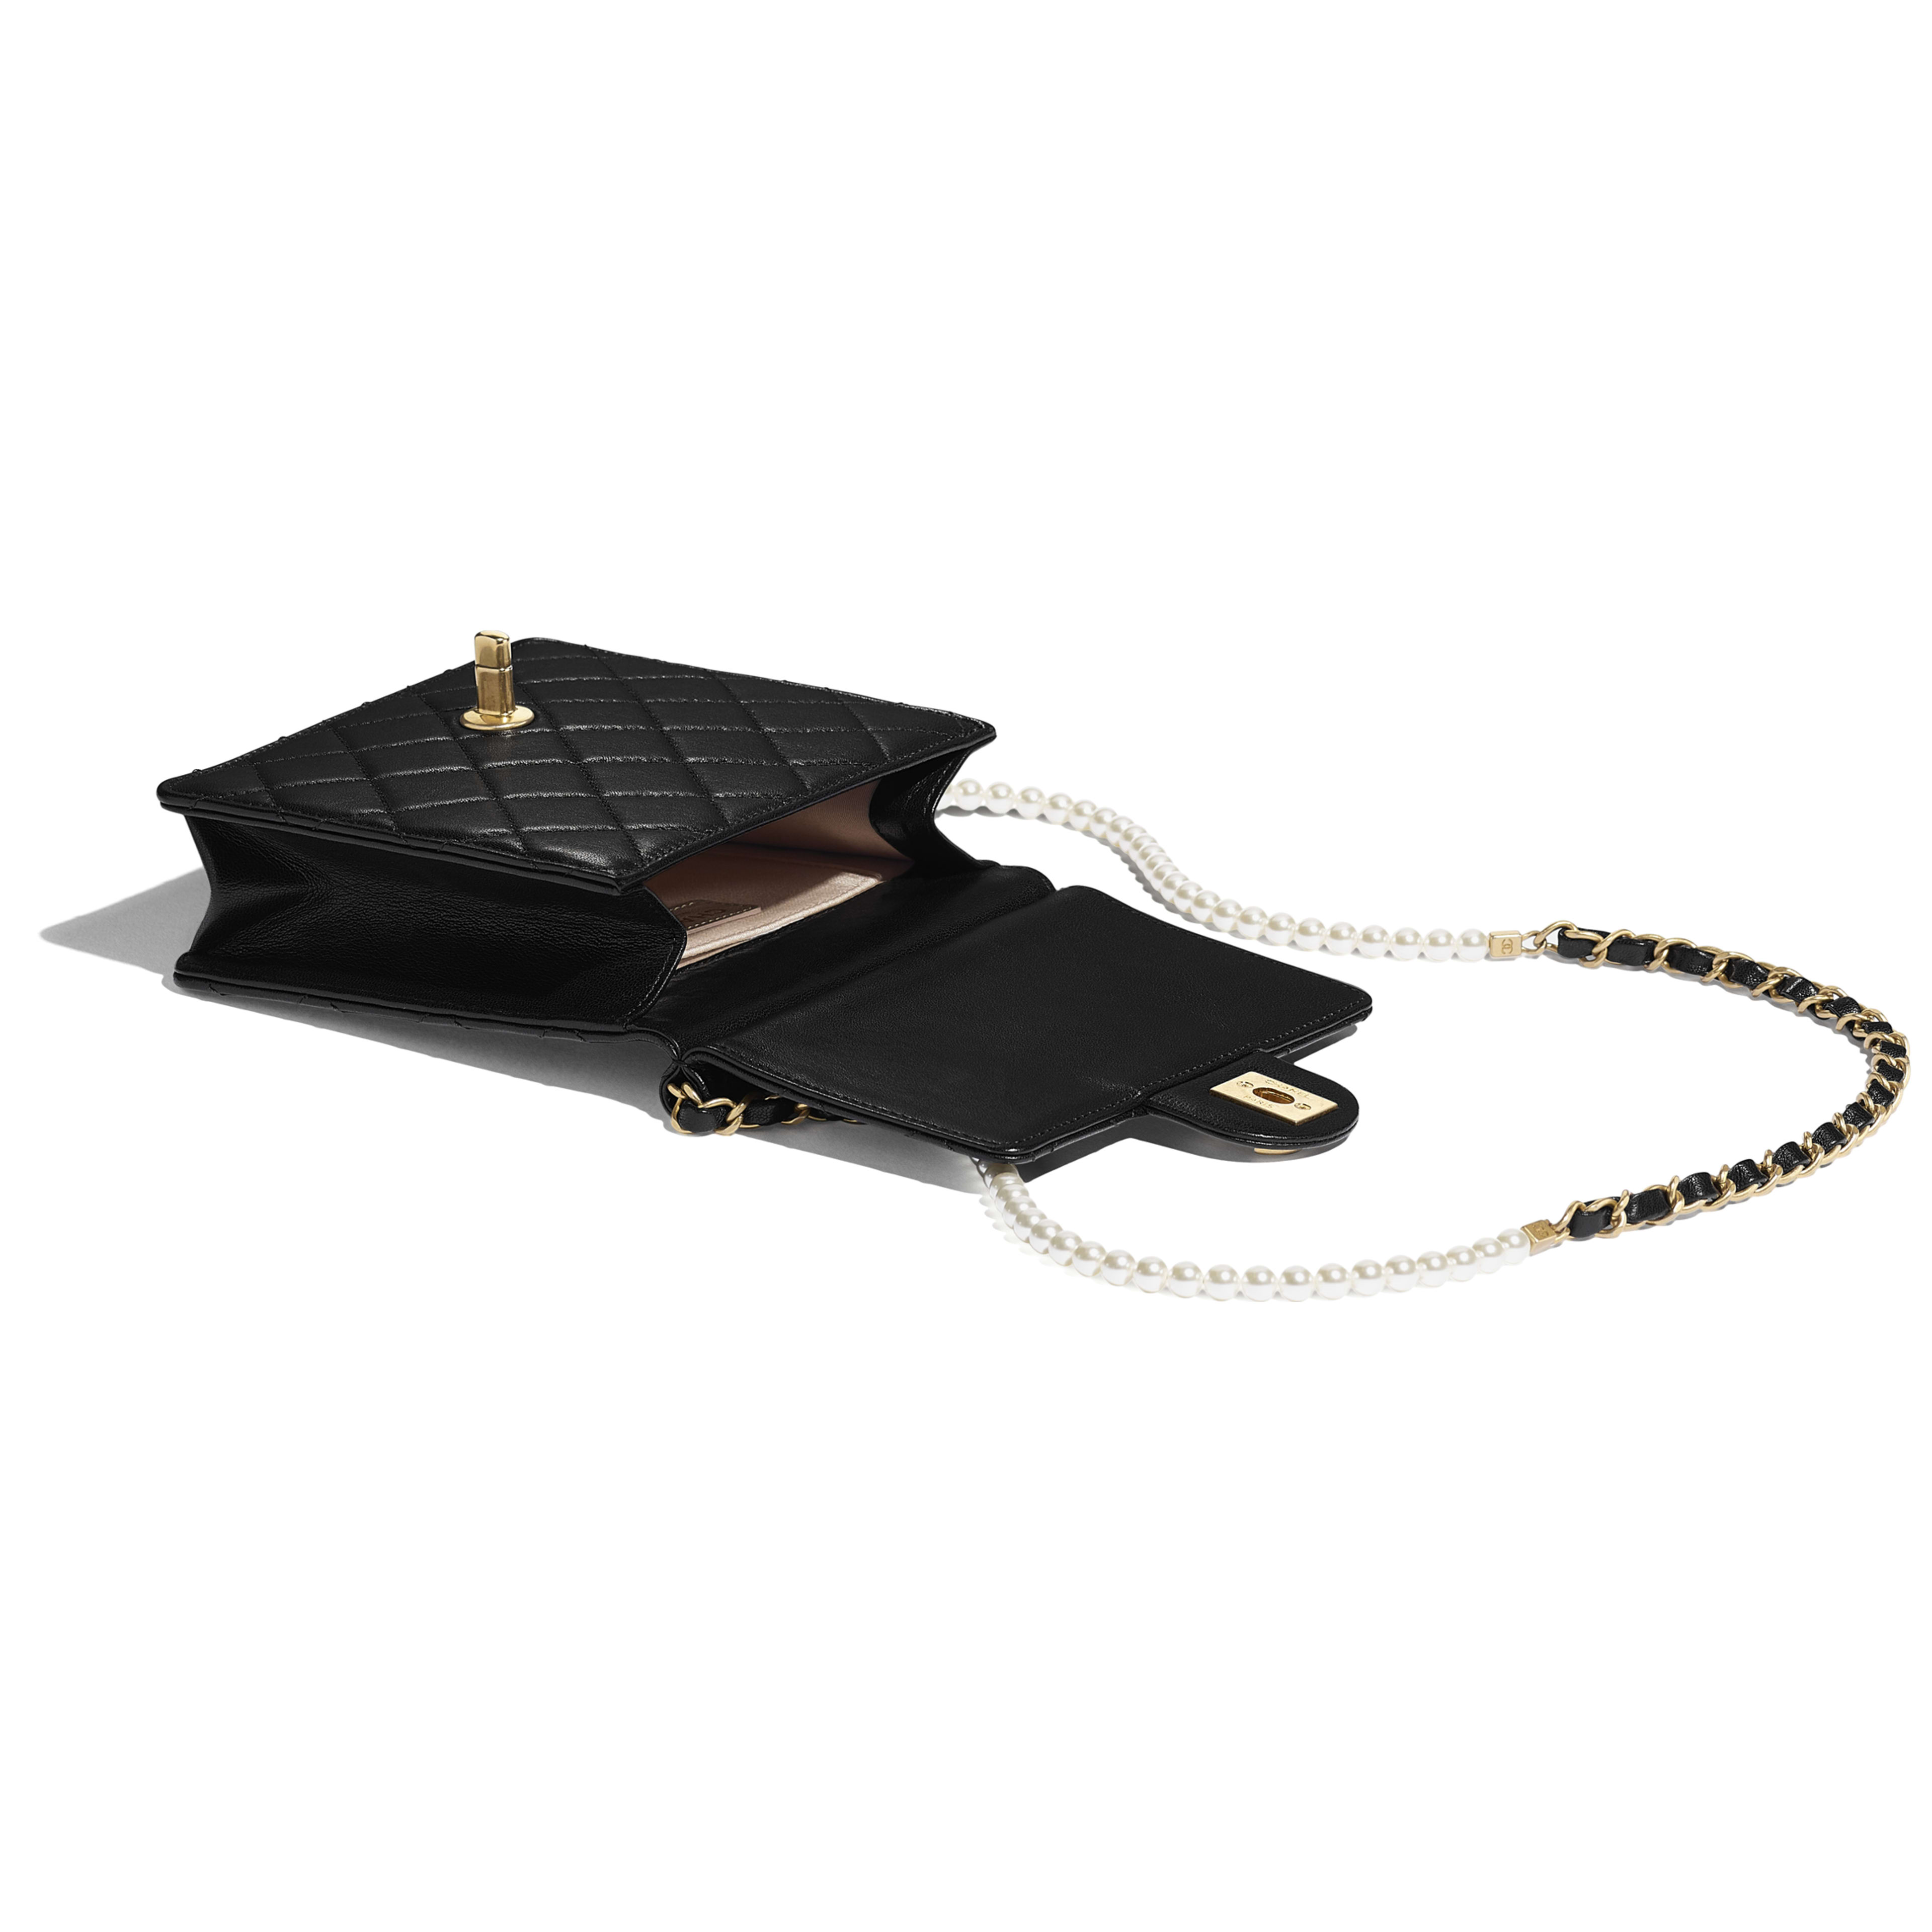 Flap Bag - Black - Lambskin, Imitation Pearls & Gold-Tone Metal - Other view - see full sized version